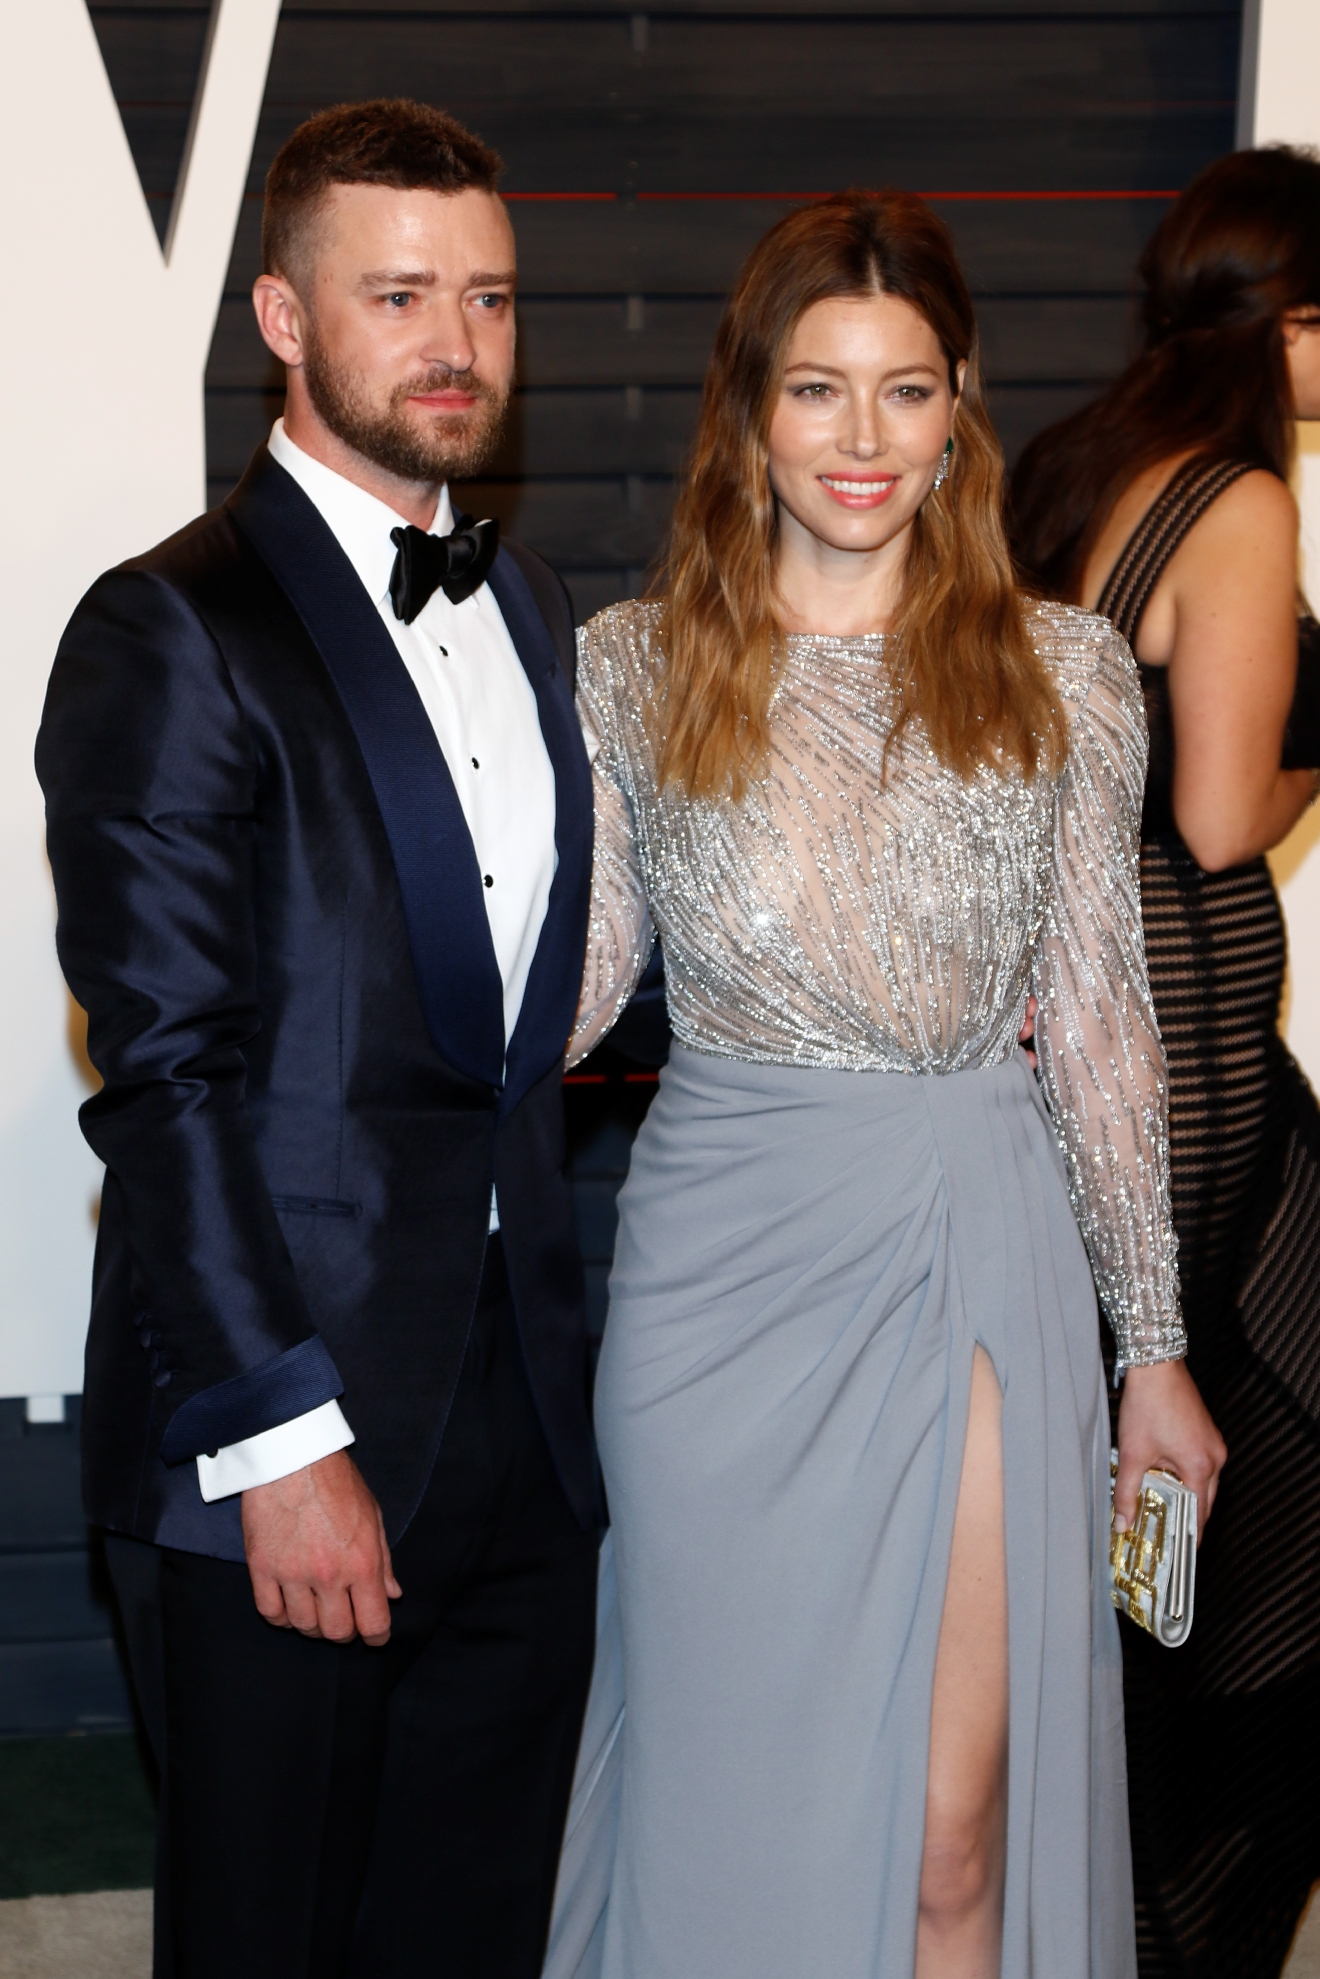 Vanity Fair Oscar Party 2016 - Arrivals  Featuring: Justin Timberlake and Jessica Biel Where: Beverly Hills, California, United States When: 29 Feb 2016 Credit: WENN.com  **Not available for publication in Germany**